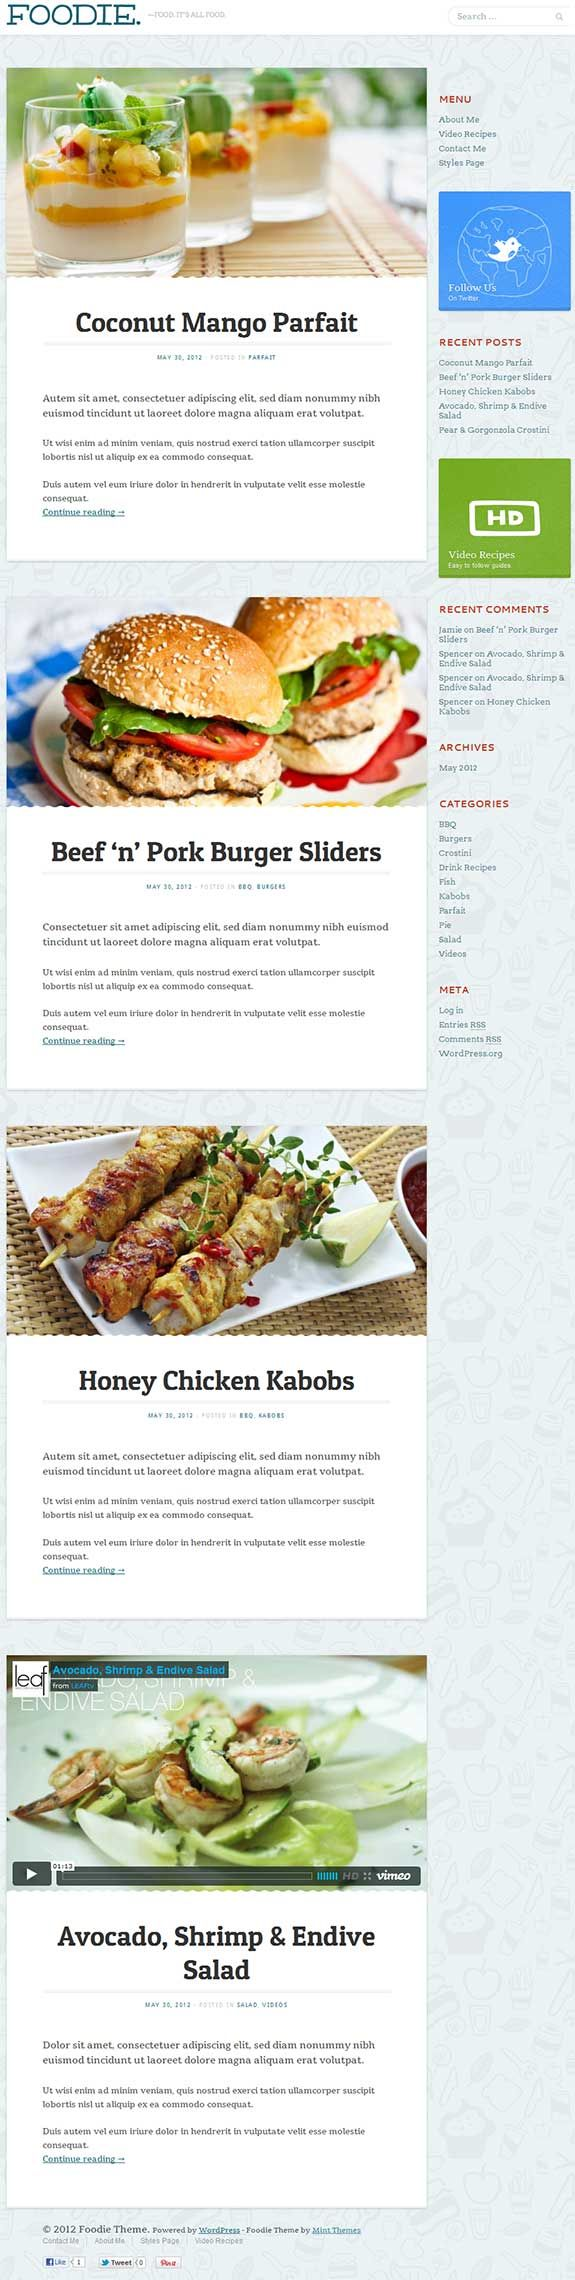 Simple and clean premium food blog WordPress theme from Mint Themes